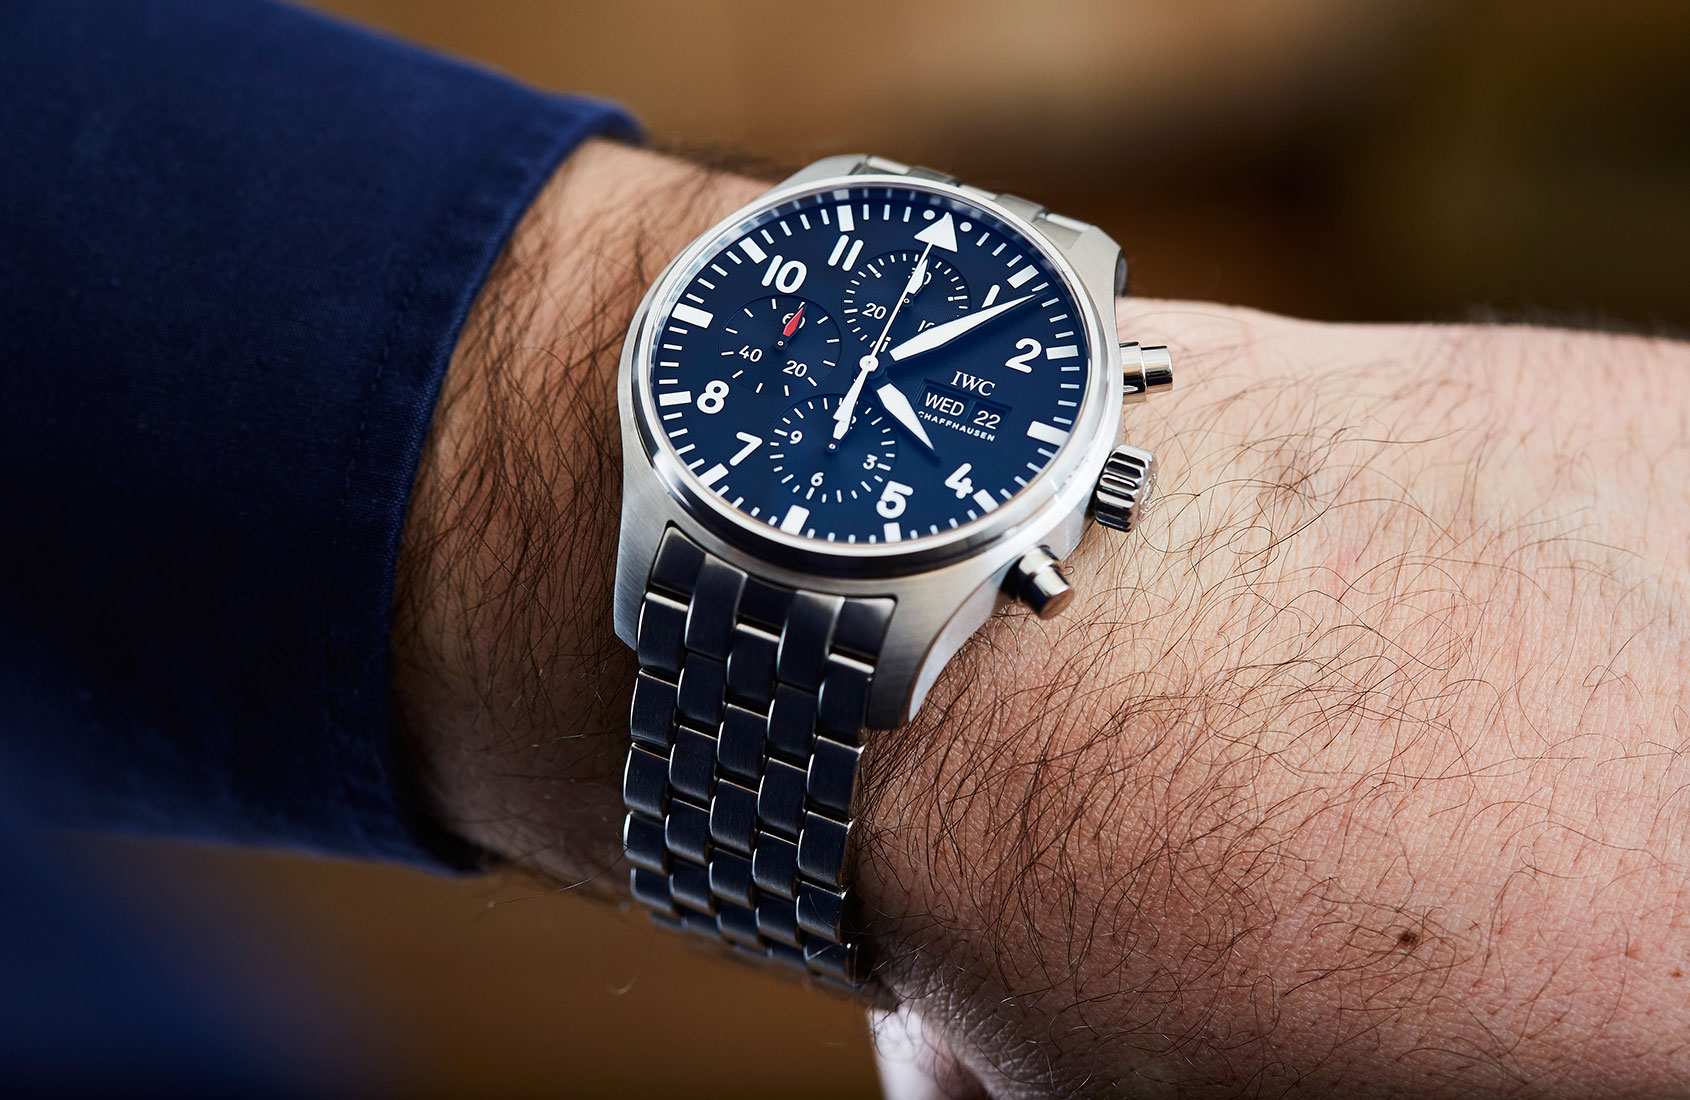 EDITOR'S PICK: What's not to love about the IWC Pilot's Chronograph?